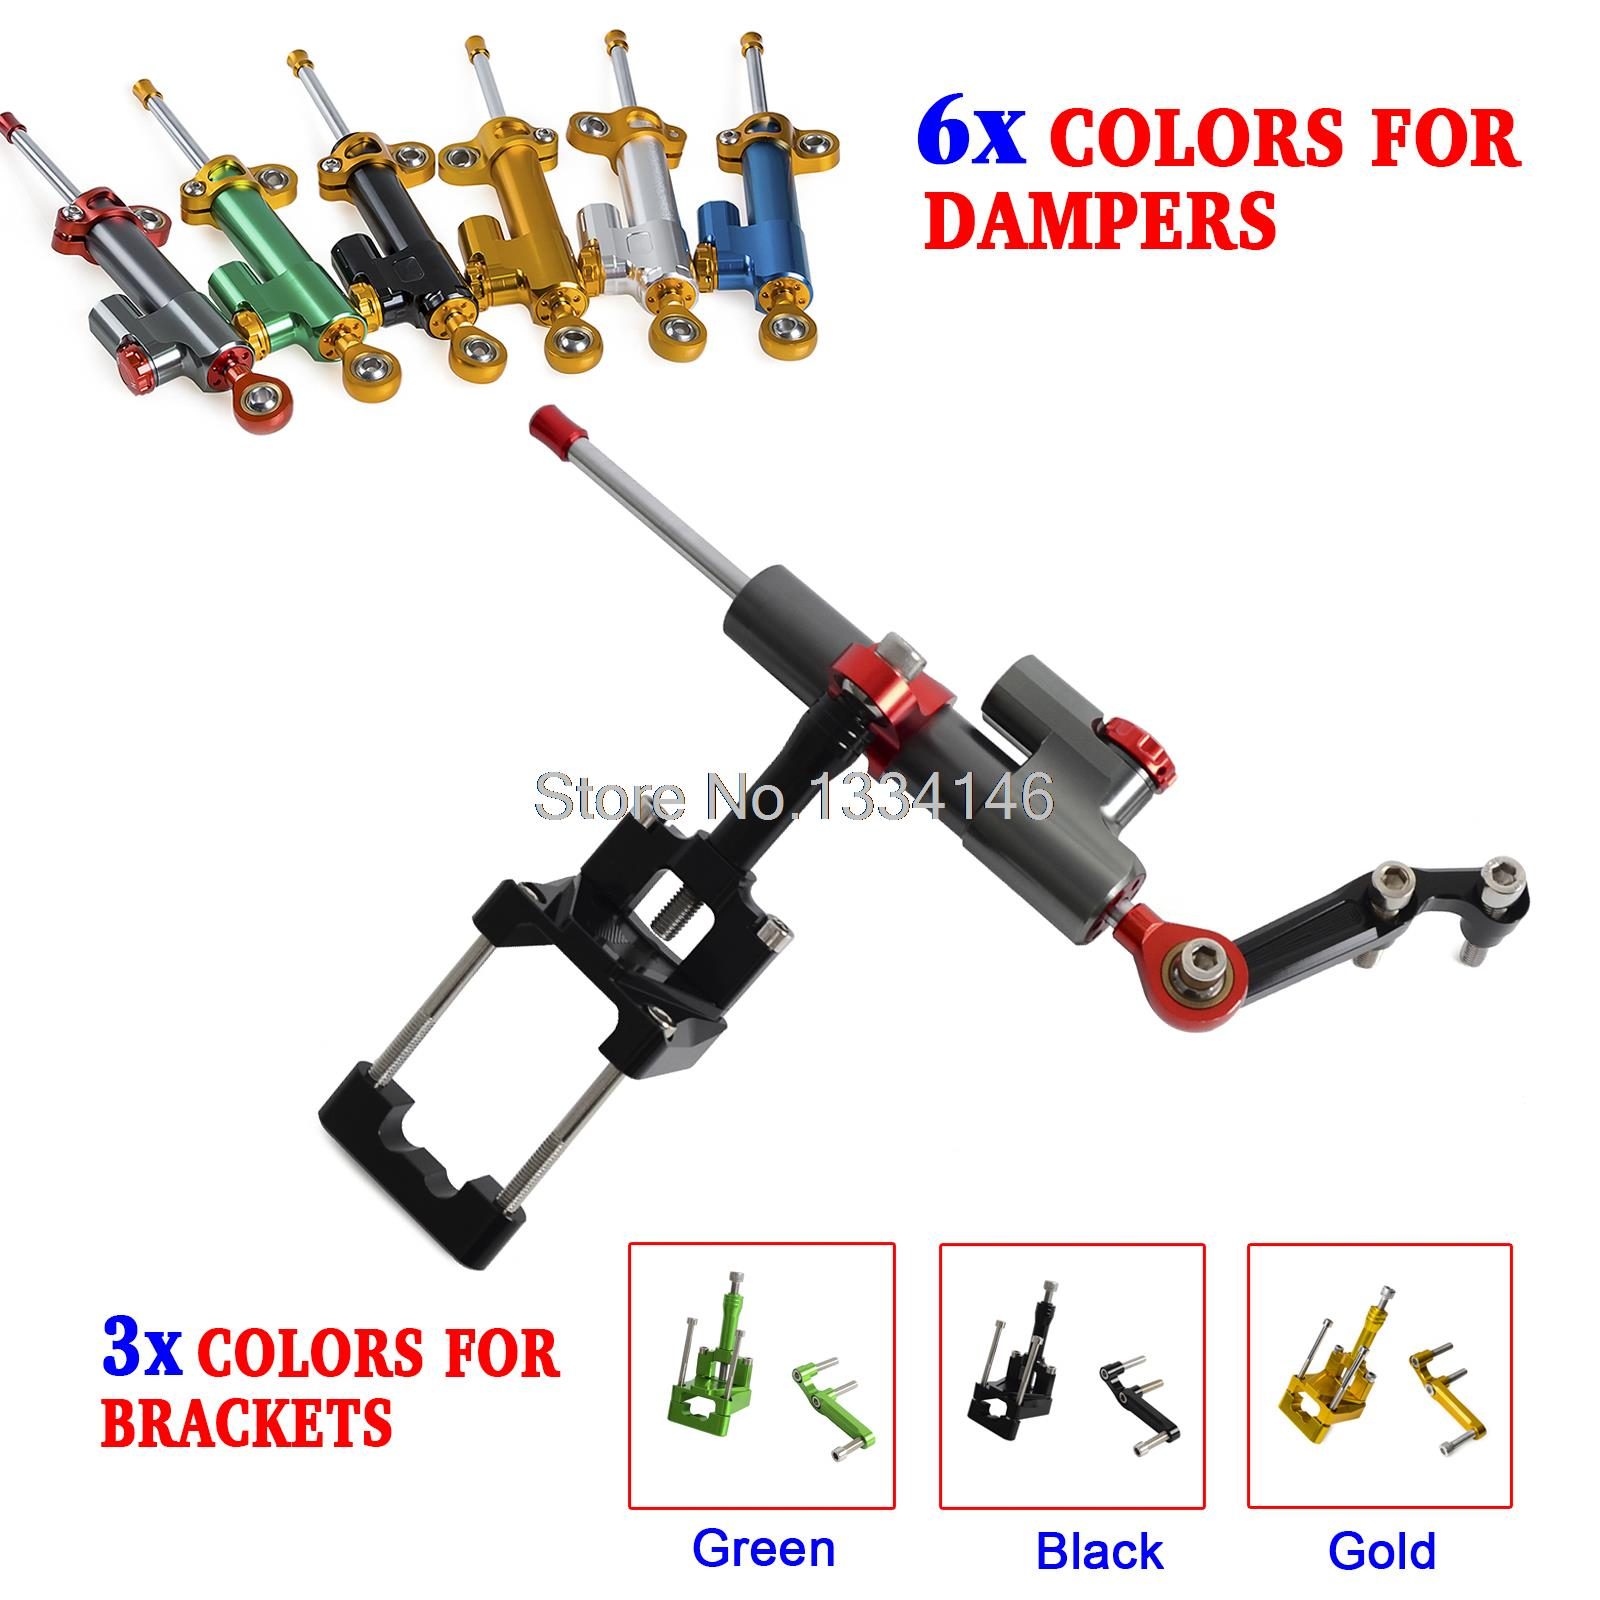 Motorcycle CNC Steering Damper Stabilizer & Bracket For Kawasaki Ninja Z250 Z300 2013 2014-2016 cnc steering damper set stabilizer with bracket mounting assemblly for kawasaki ninja300 ninja 300 ex300 13 14 15 16 2013 2016